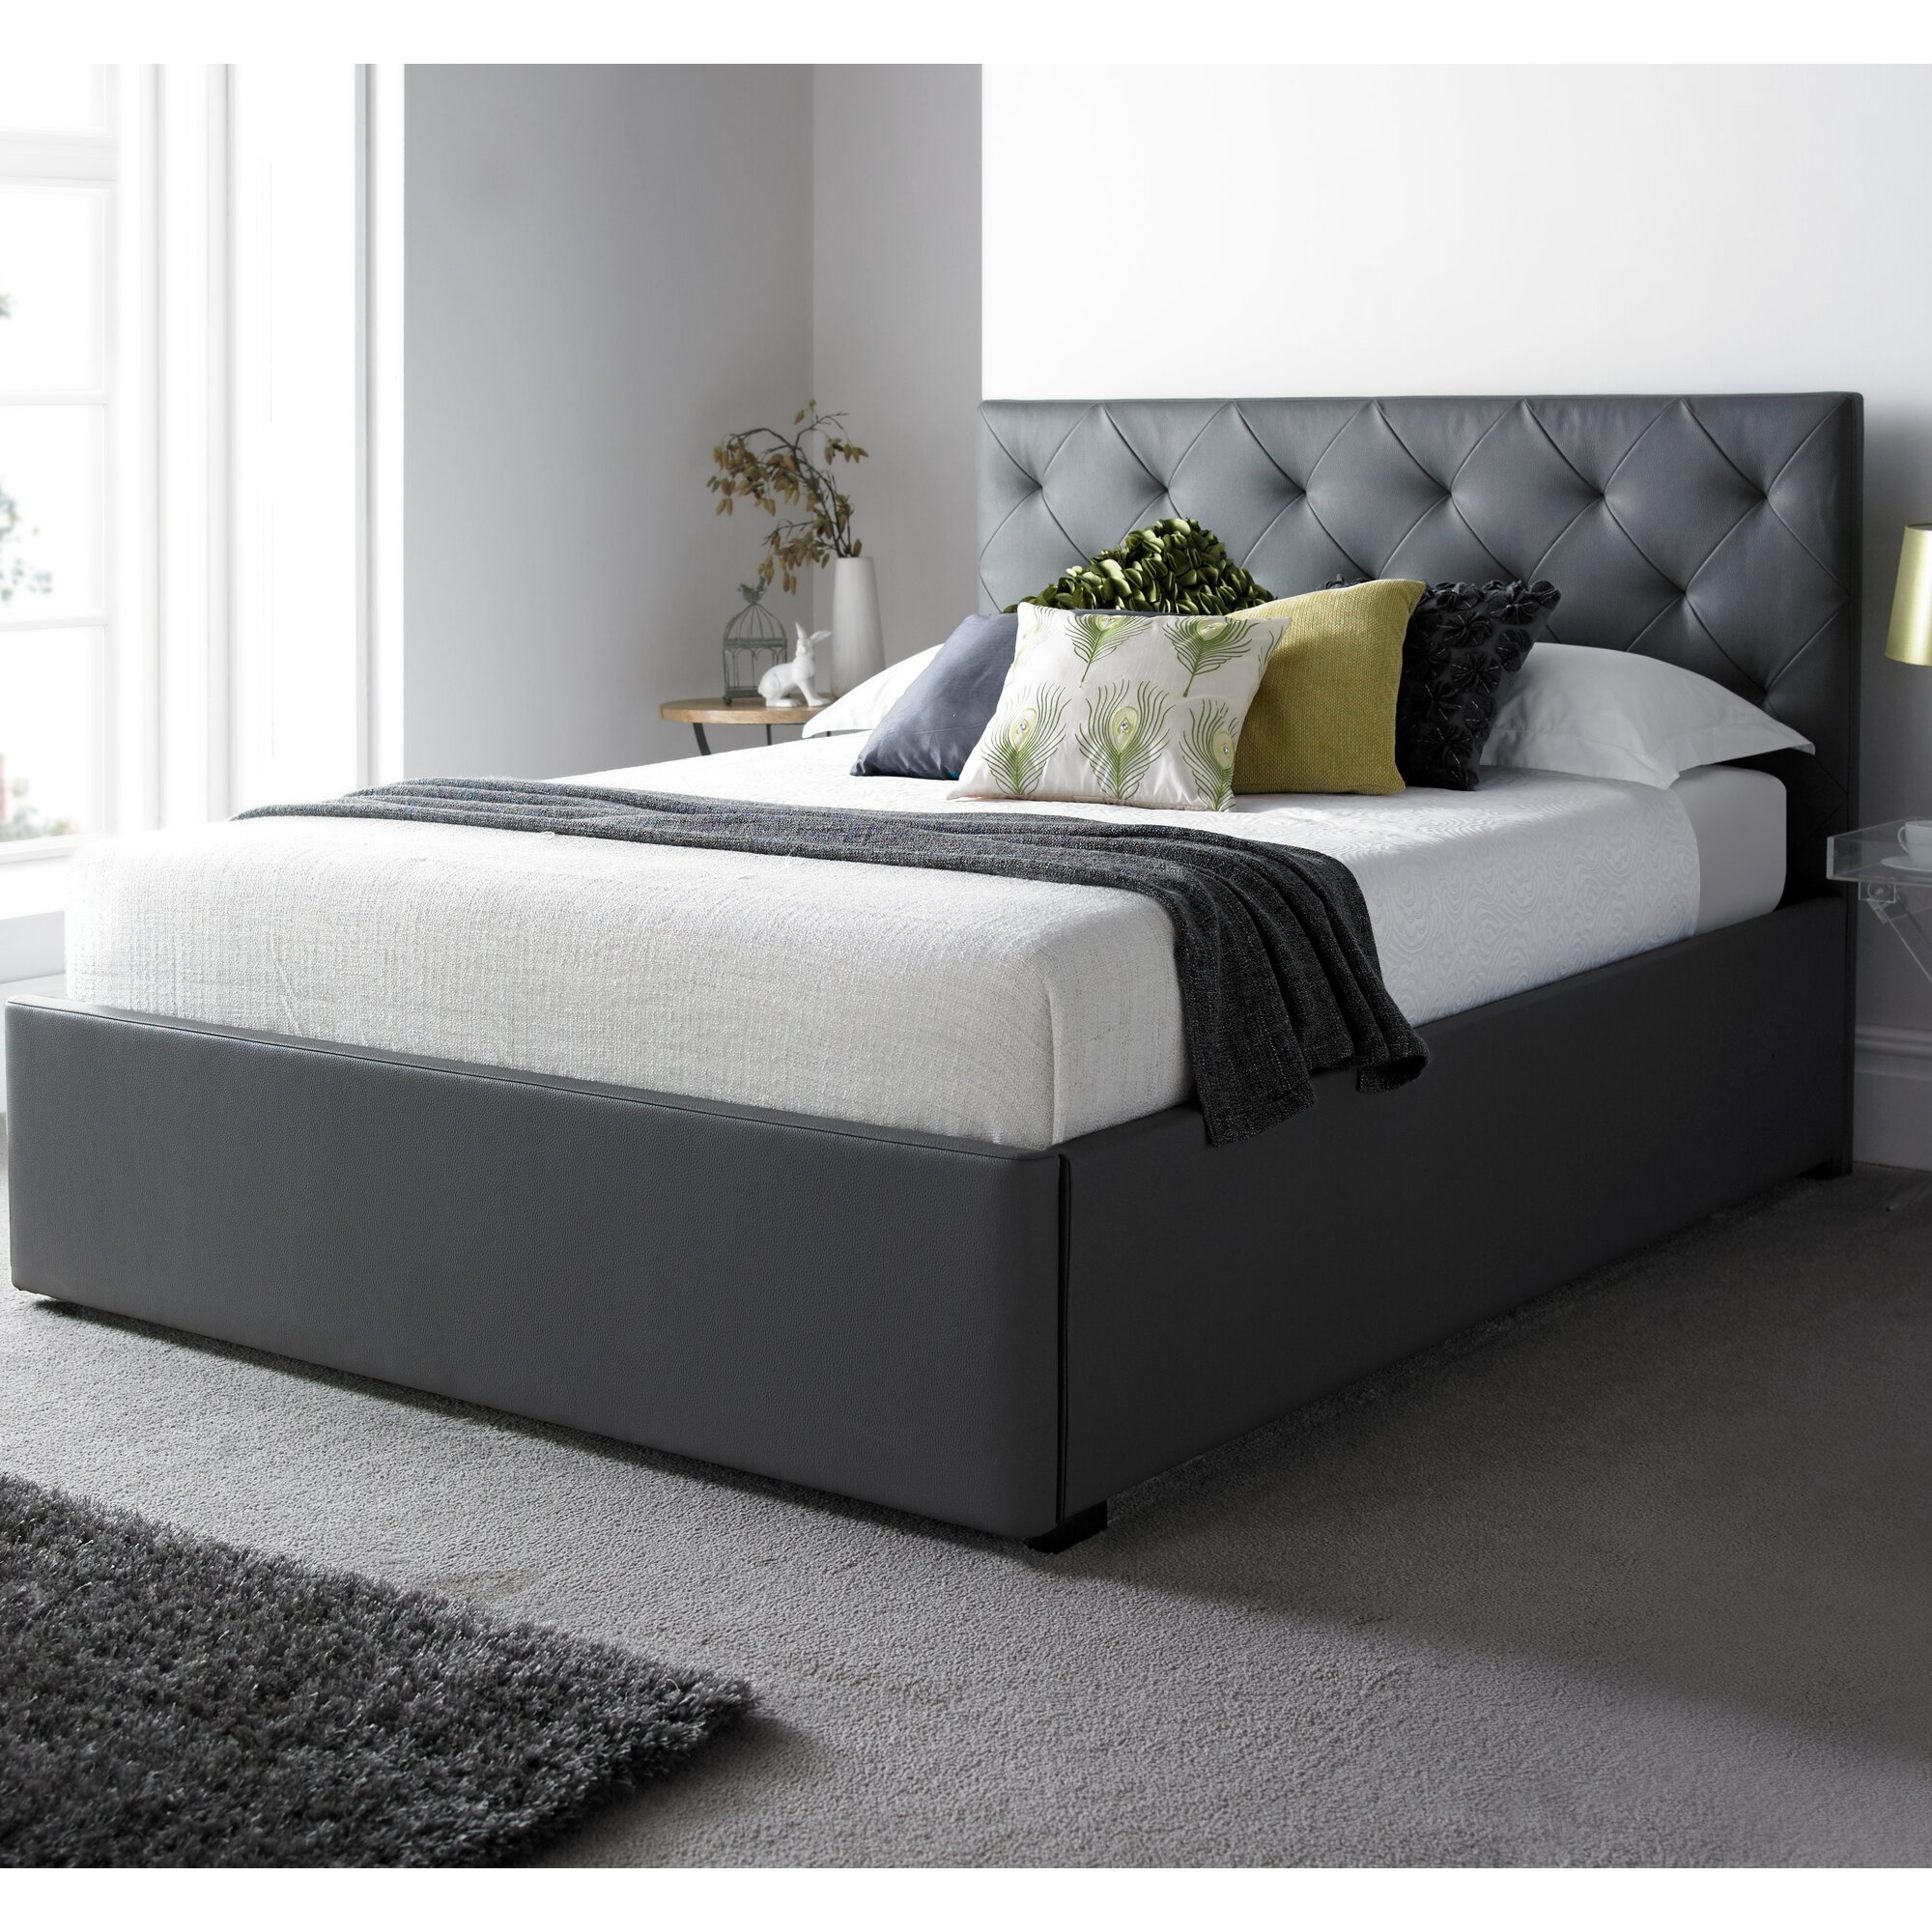 Home loft concept arouca upholstered storage bed reviews for Concept beds